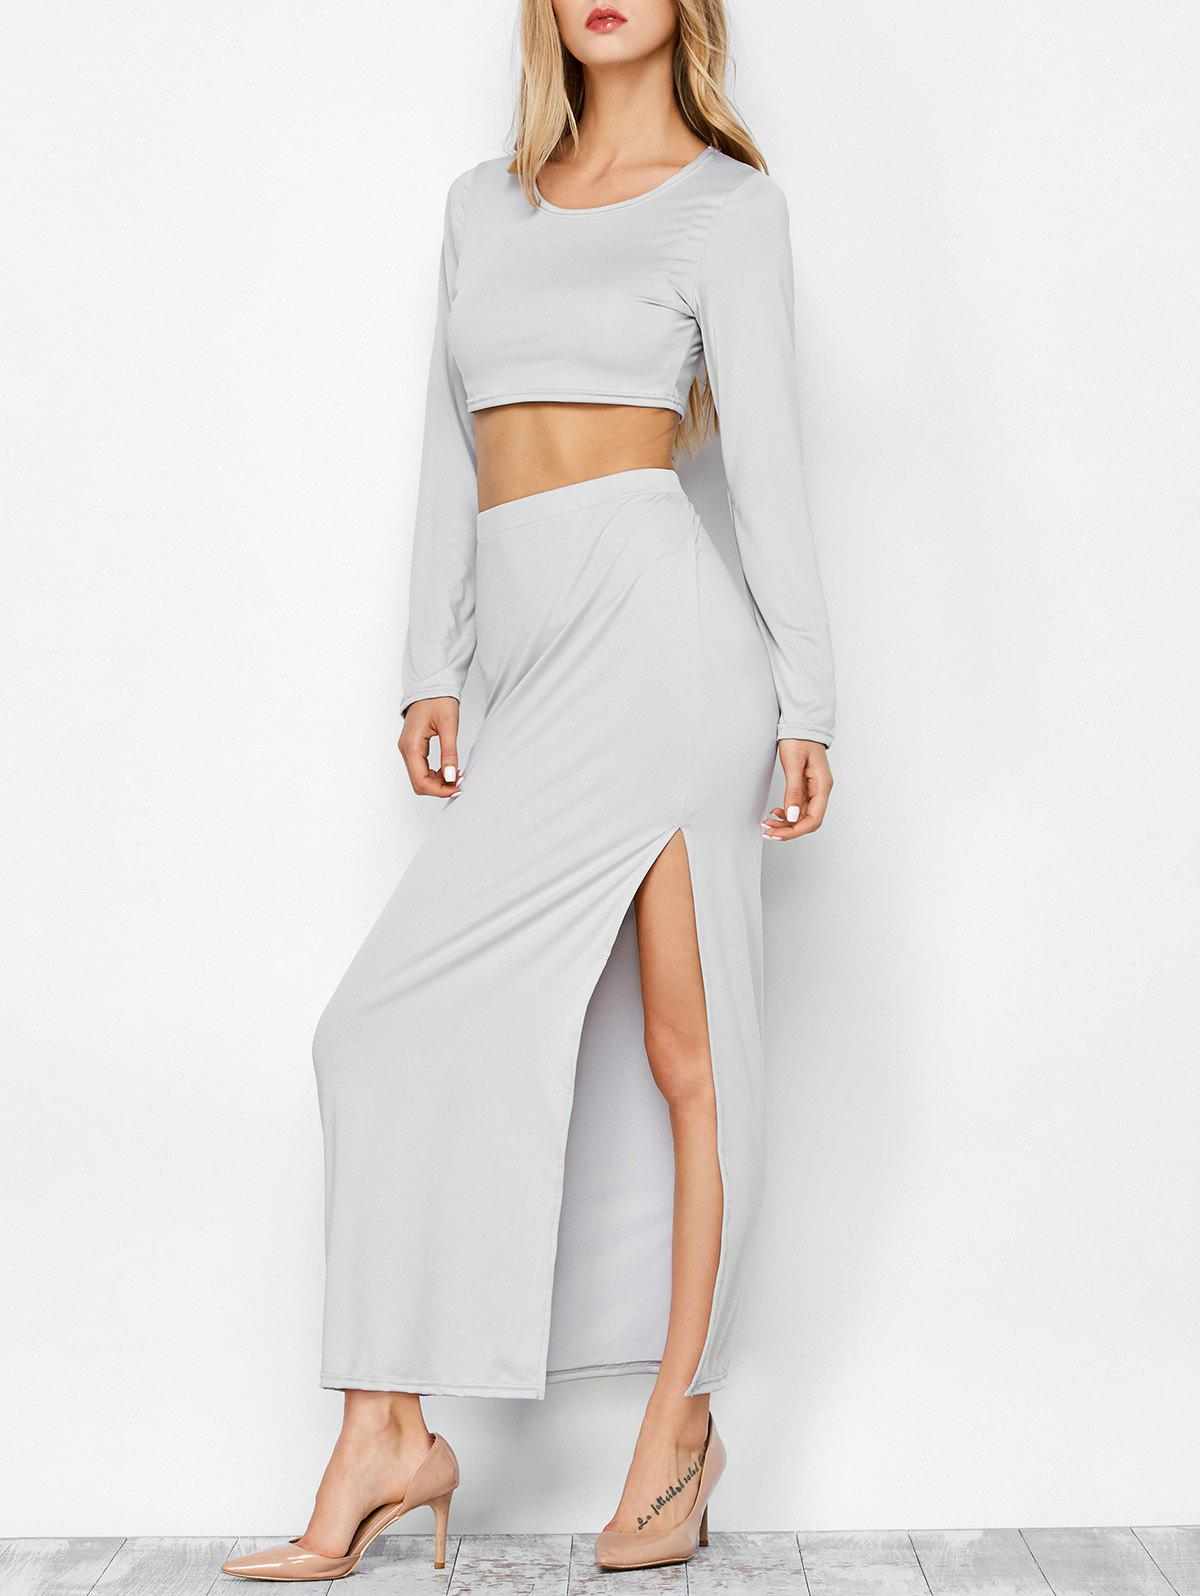 High Slit Long Sleeve Two Piece Dress - LIGHT GRAY XL